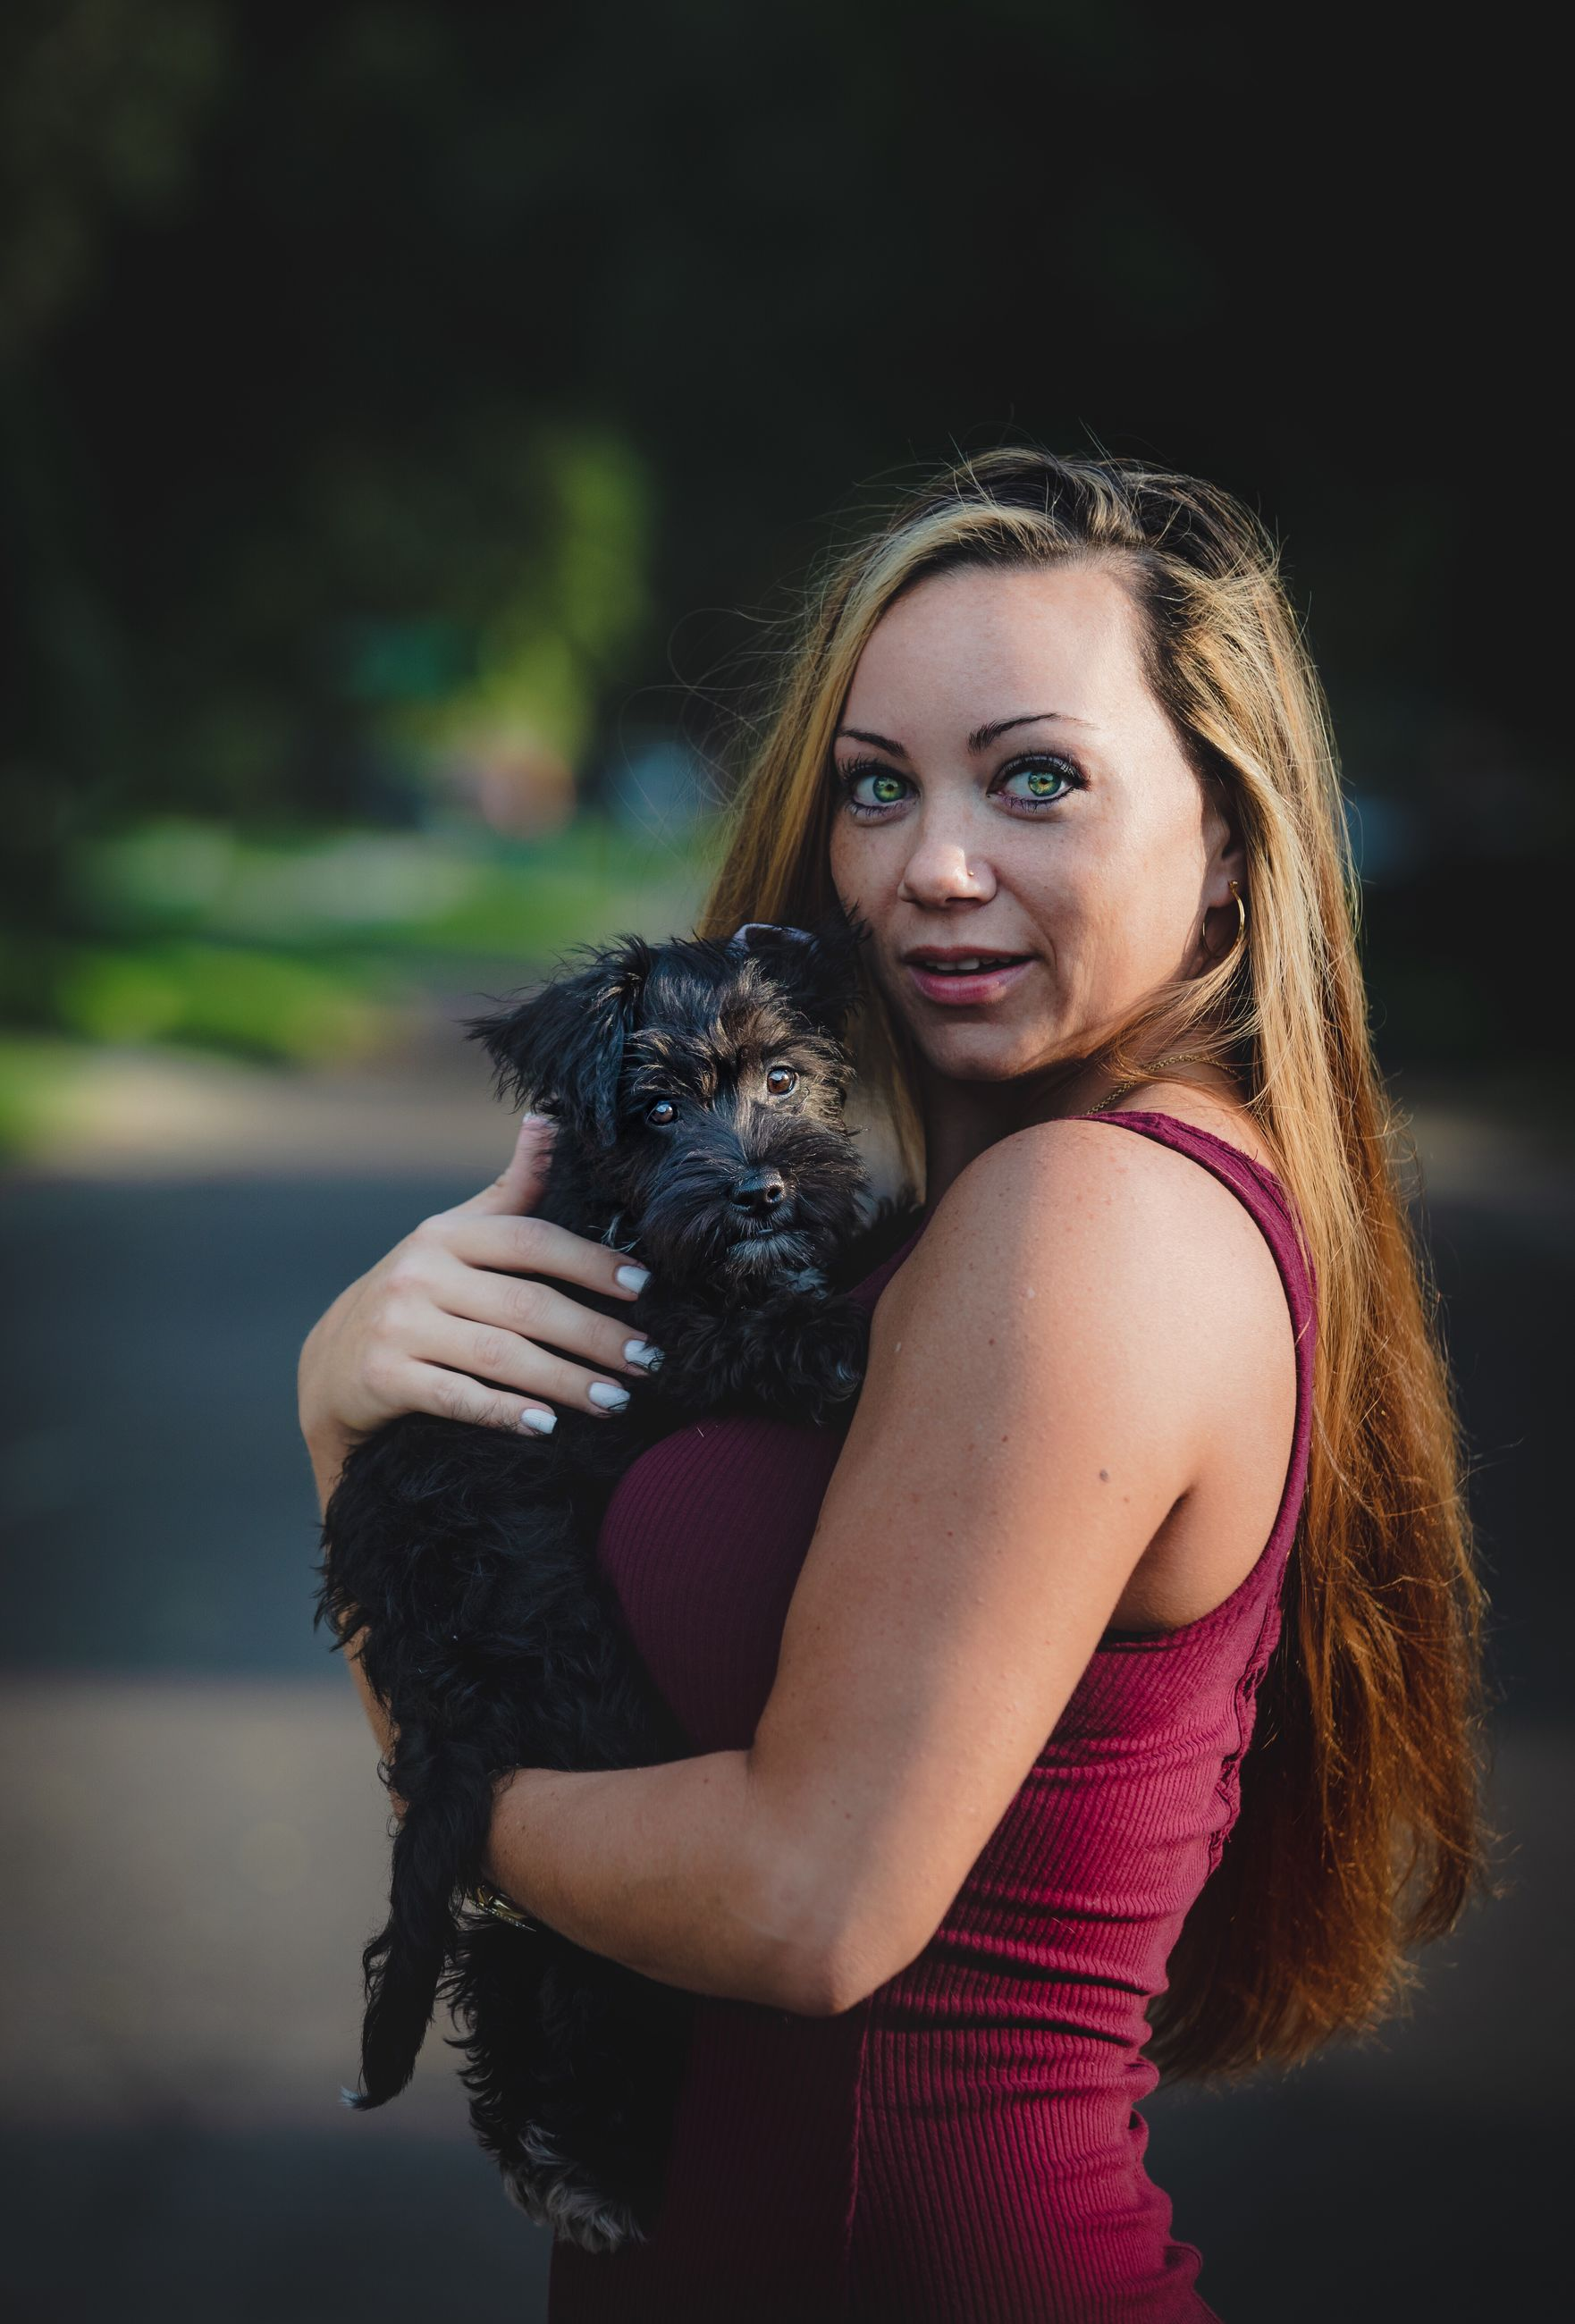 PORTRAIT OF YOUNG WOMAN WITH DOG ON RED